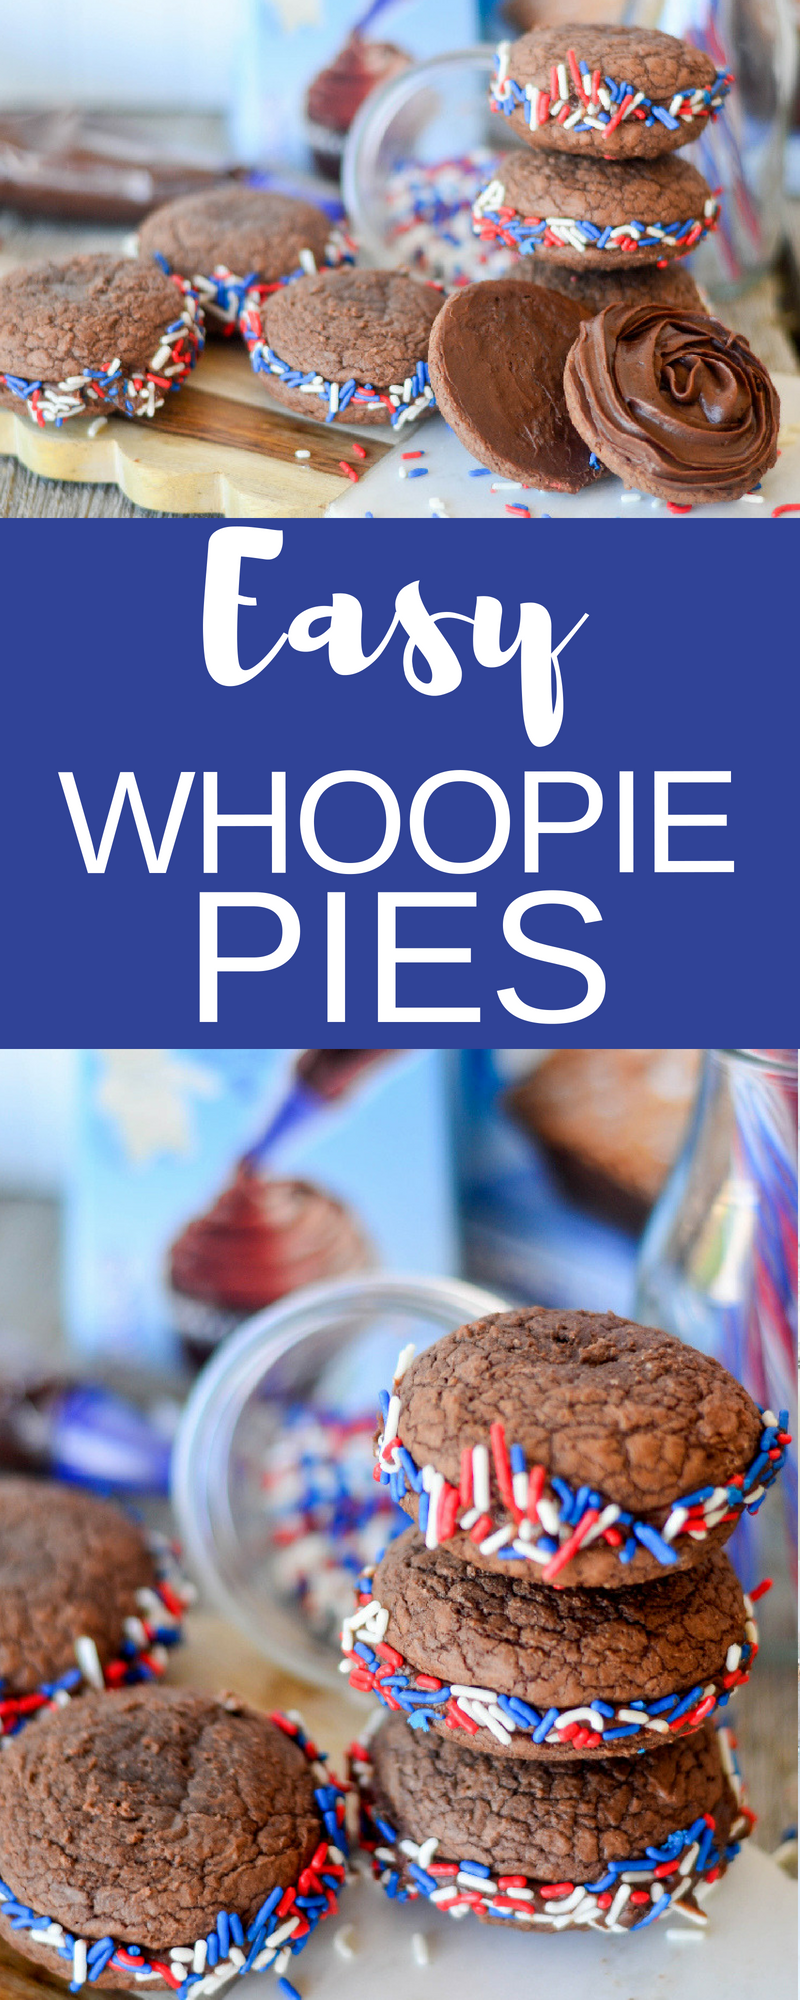 Easy Whoopie Pies Collage